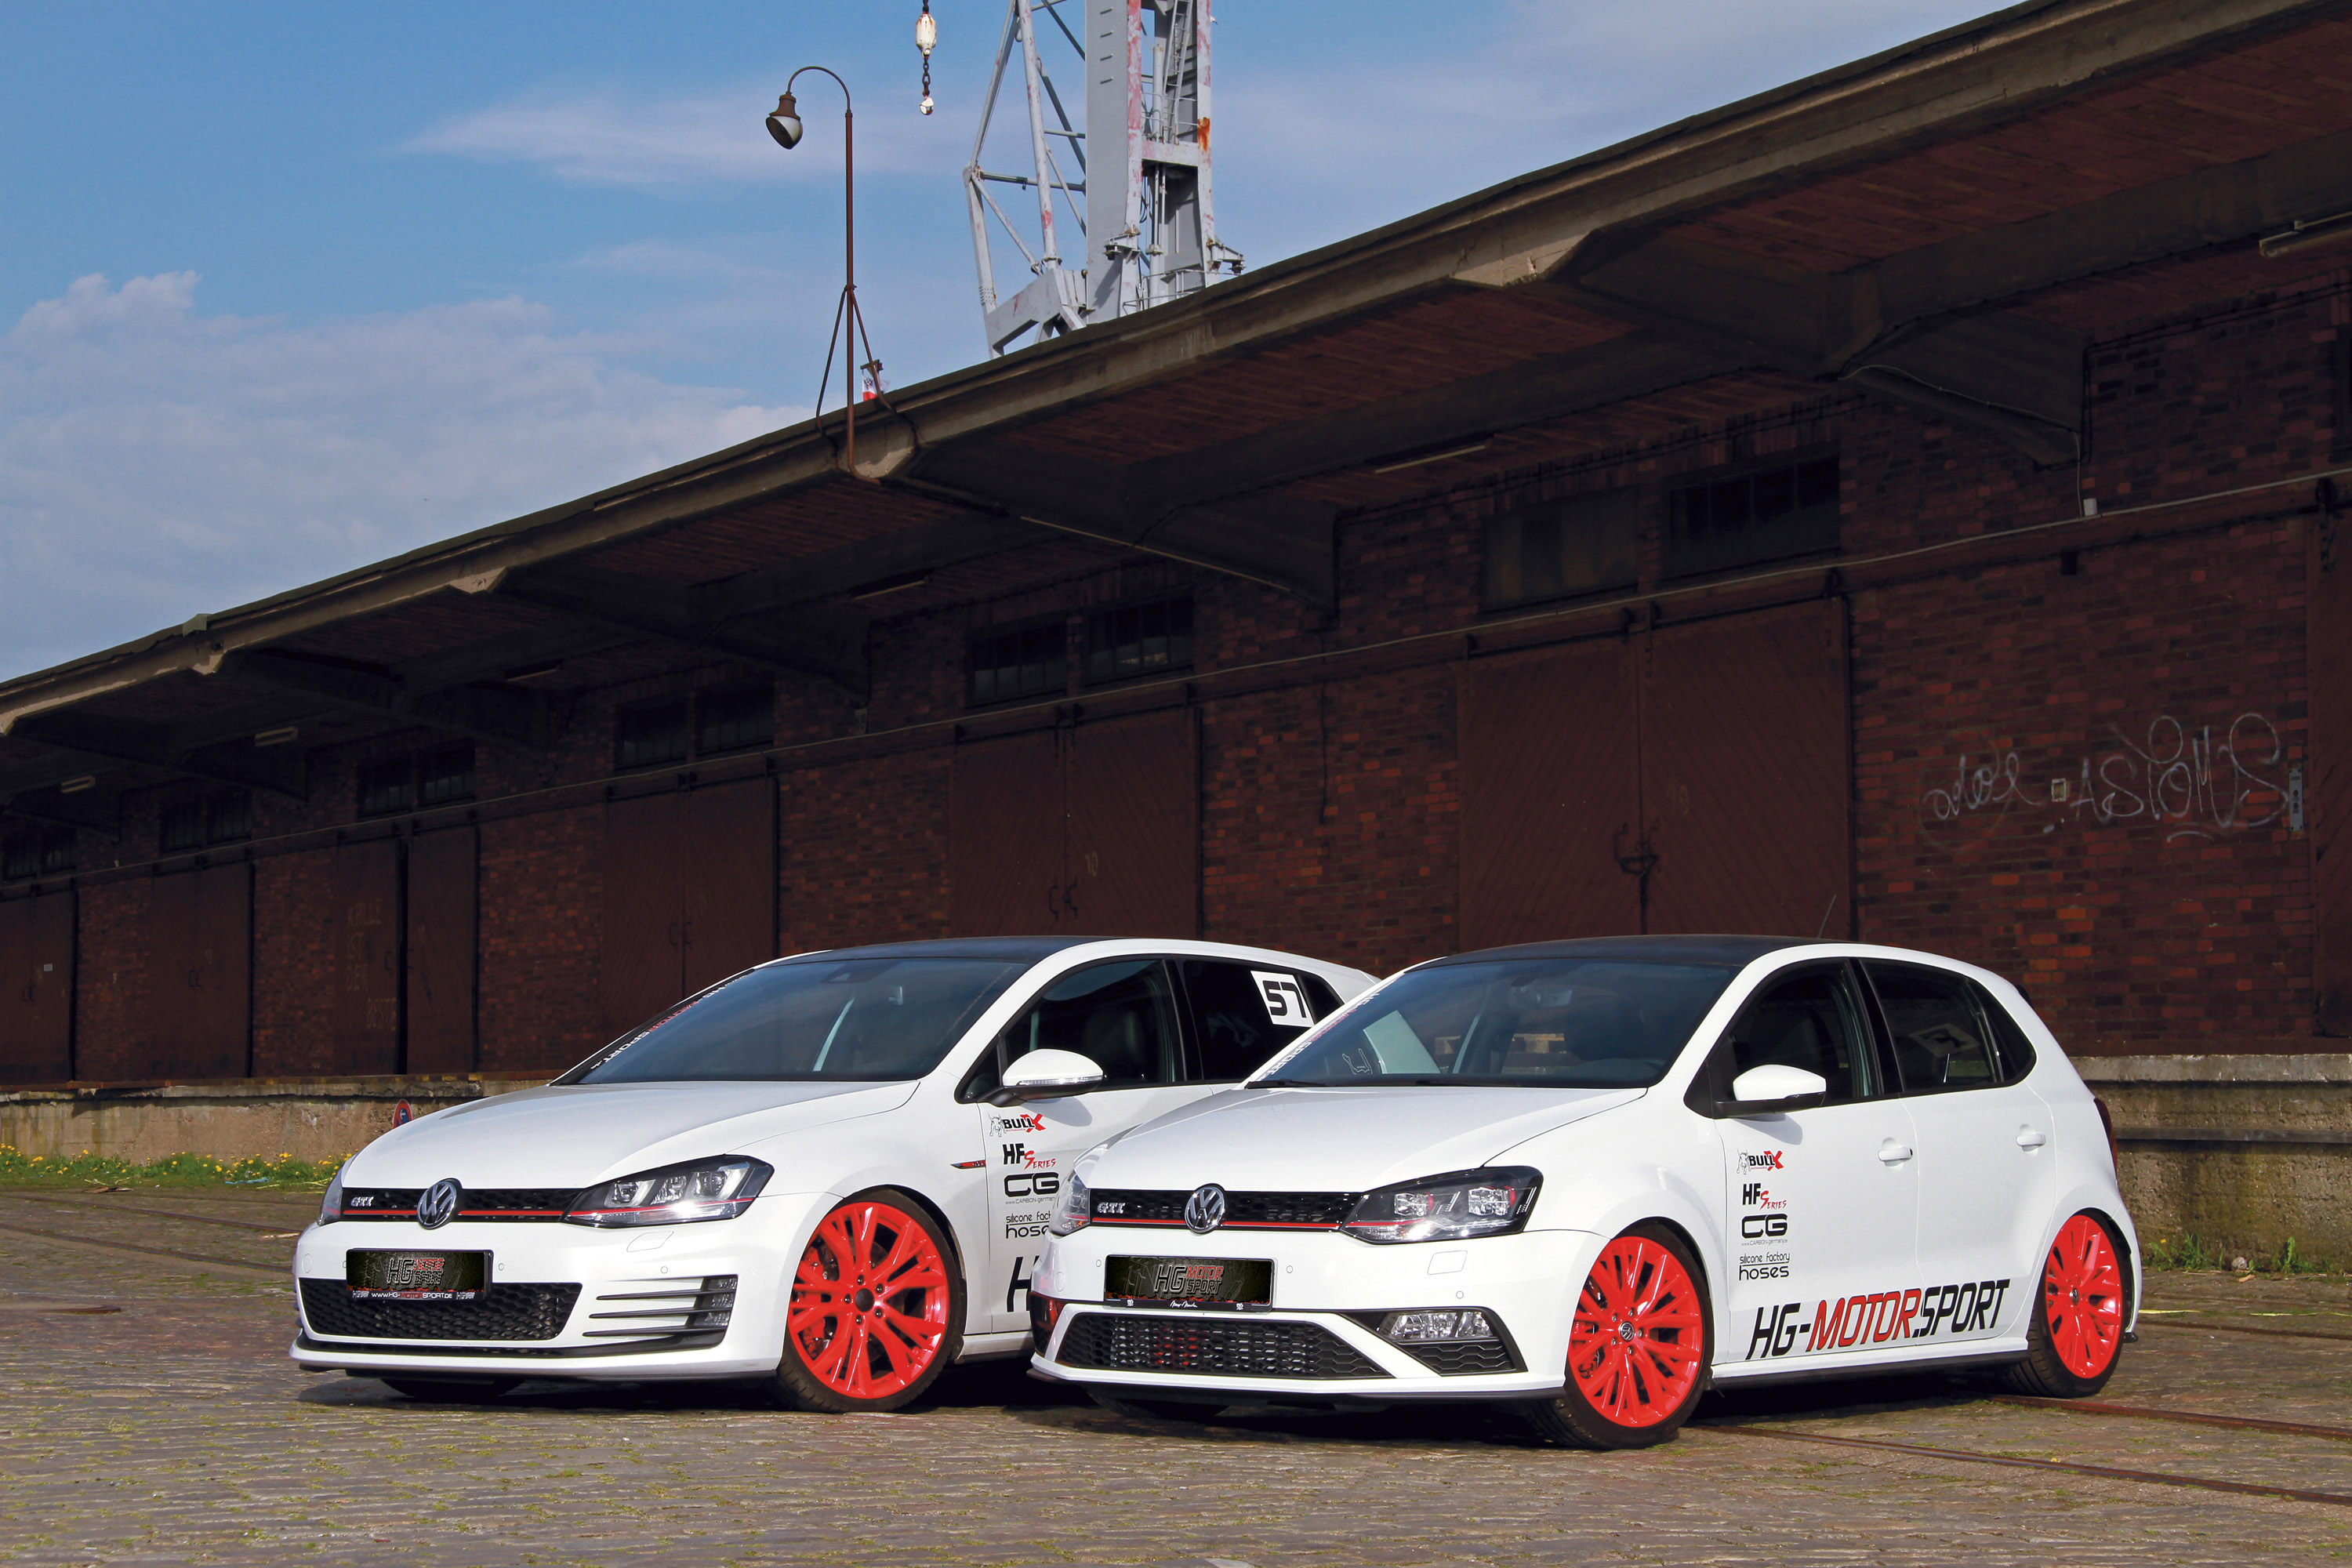 hg motorsport volkswagen golf gti and polo gti can beat. Black Bedroom Furniture Sets. Home Design Ideas